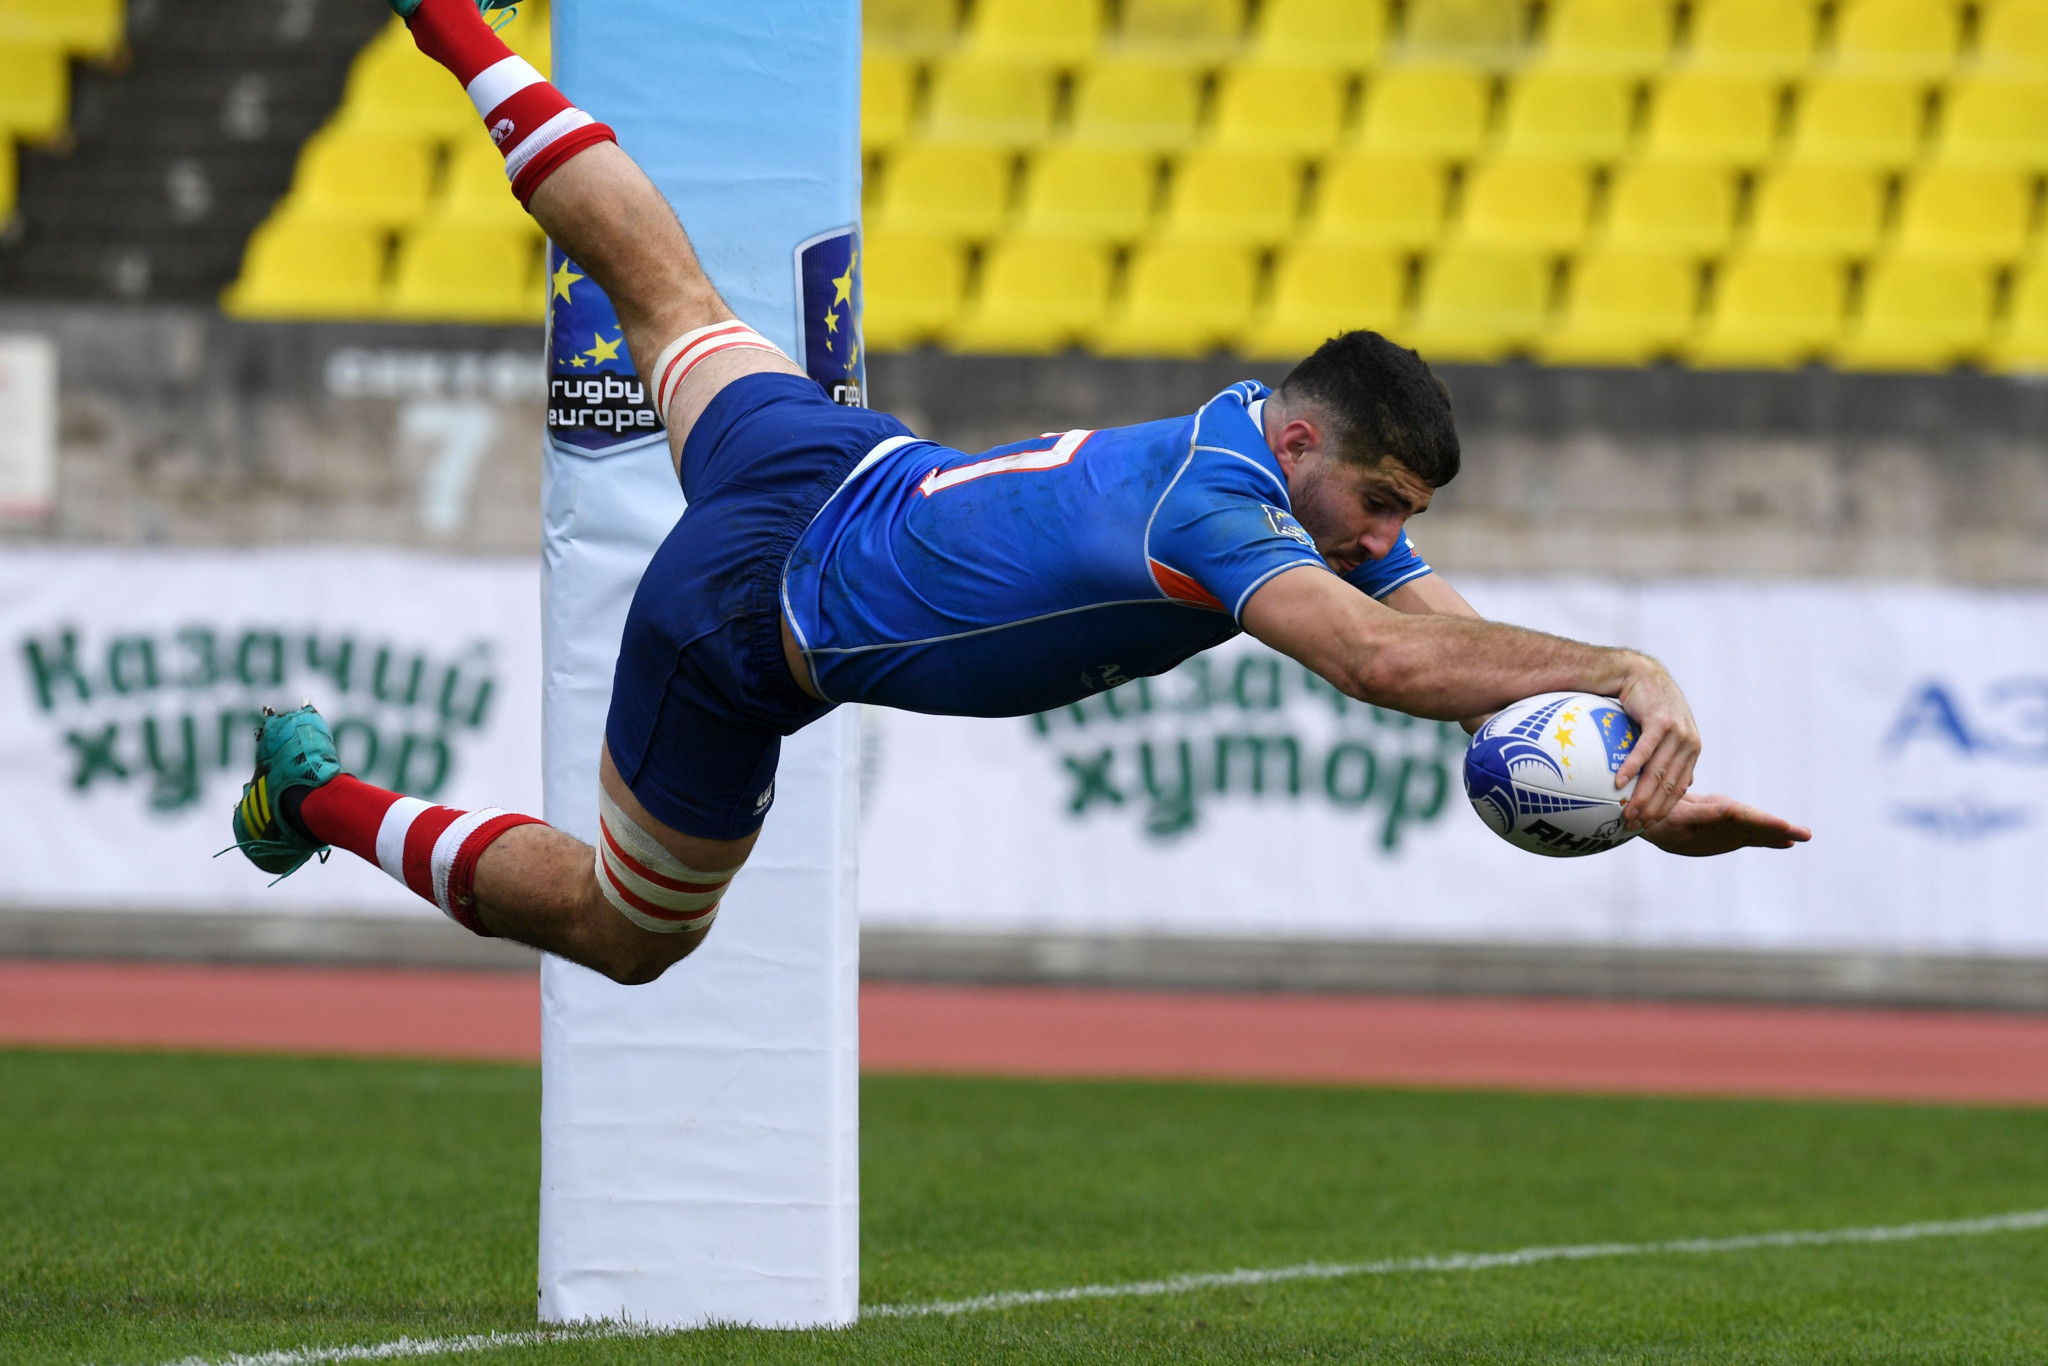 Octavian Morariu has vowed to work to promote and improve the Rugby Europe Championship ©Getty Images